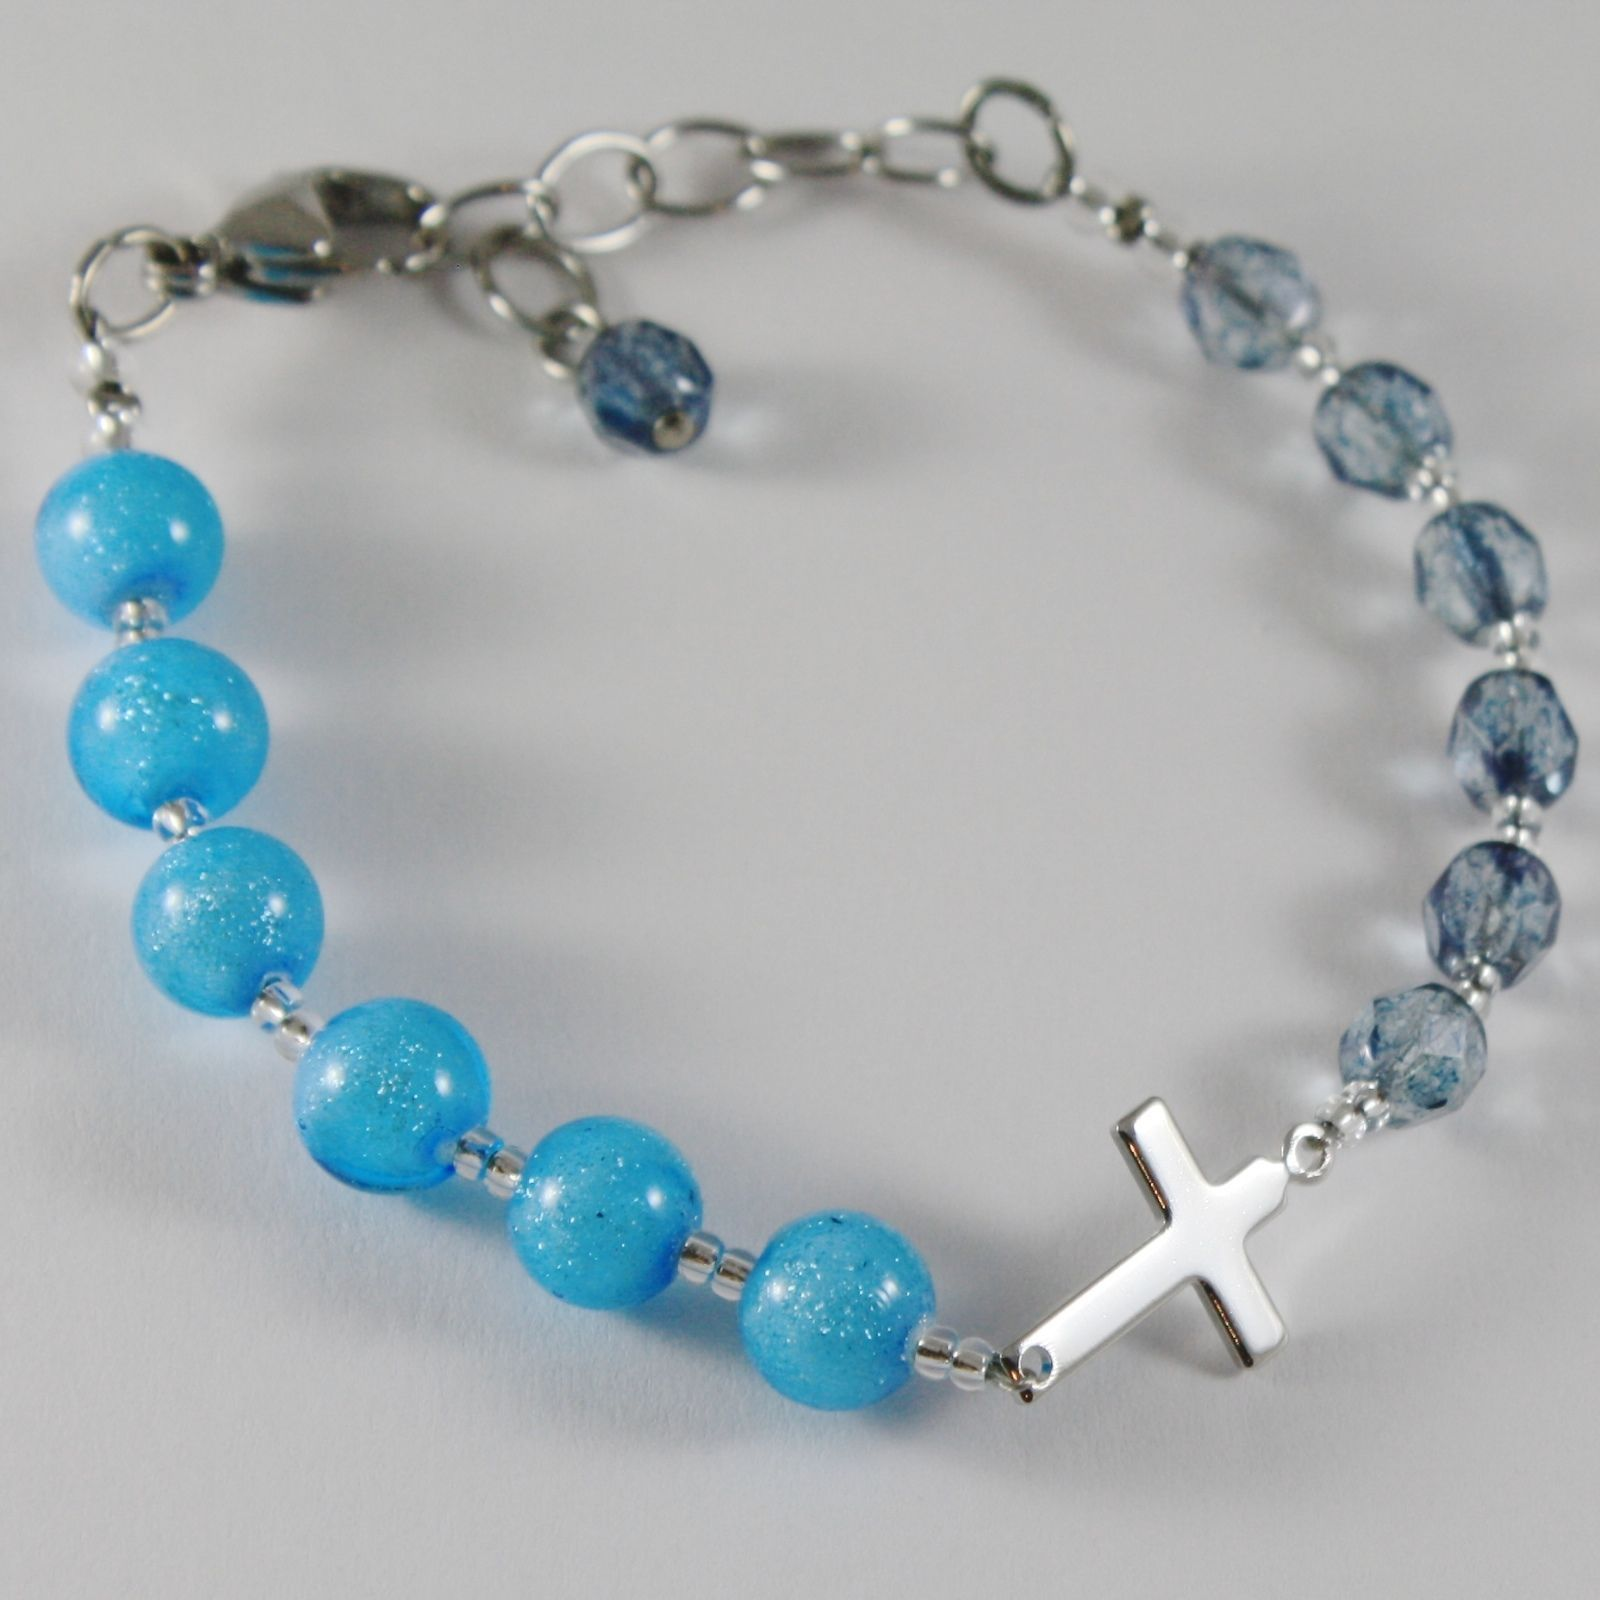 ANTICA MURRINA VENEZIA ROSARY BRACELET BLUE BALLS SPHERE WITH JESUS CROSS